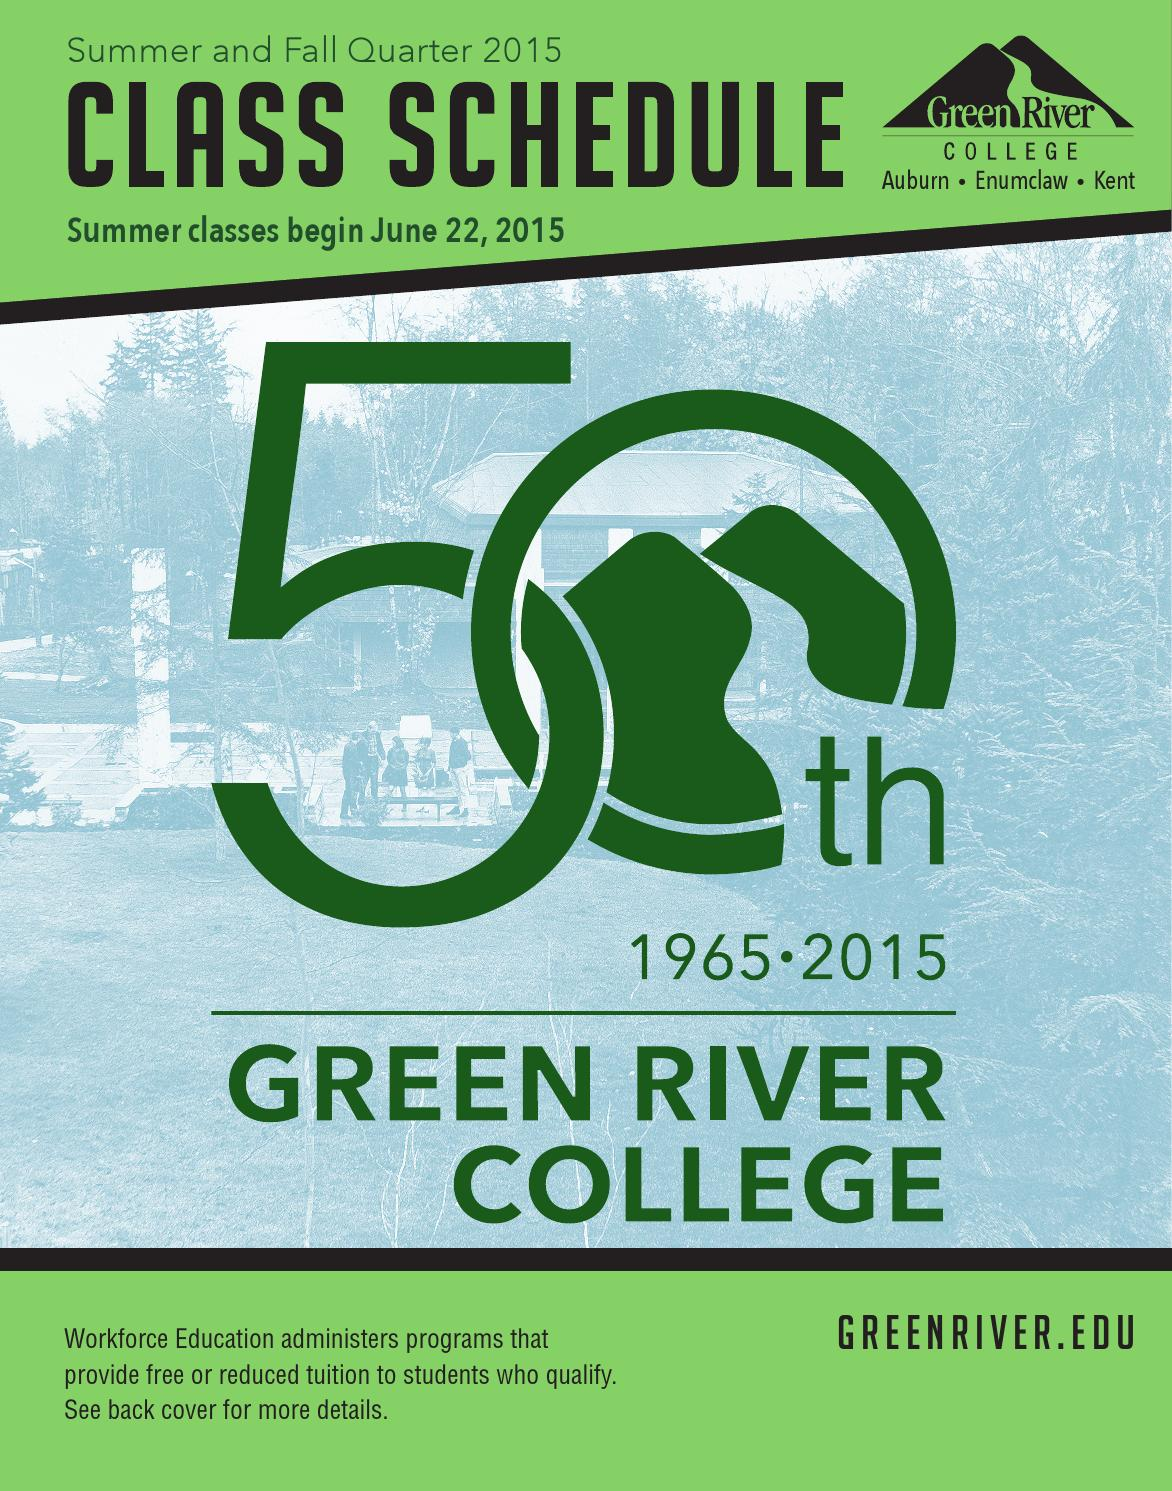 Green River College\'s Sum fall 15 schedule by Green River College ...